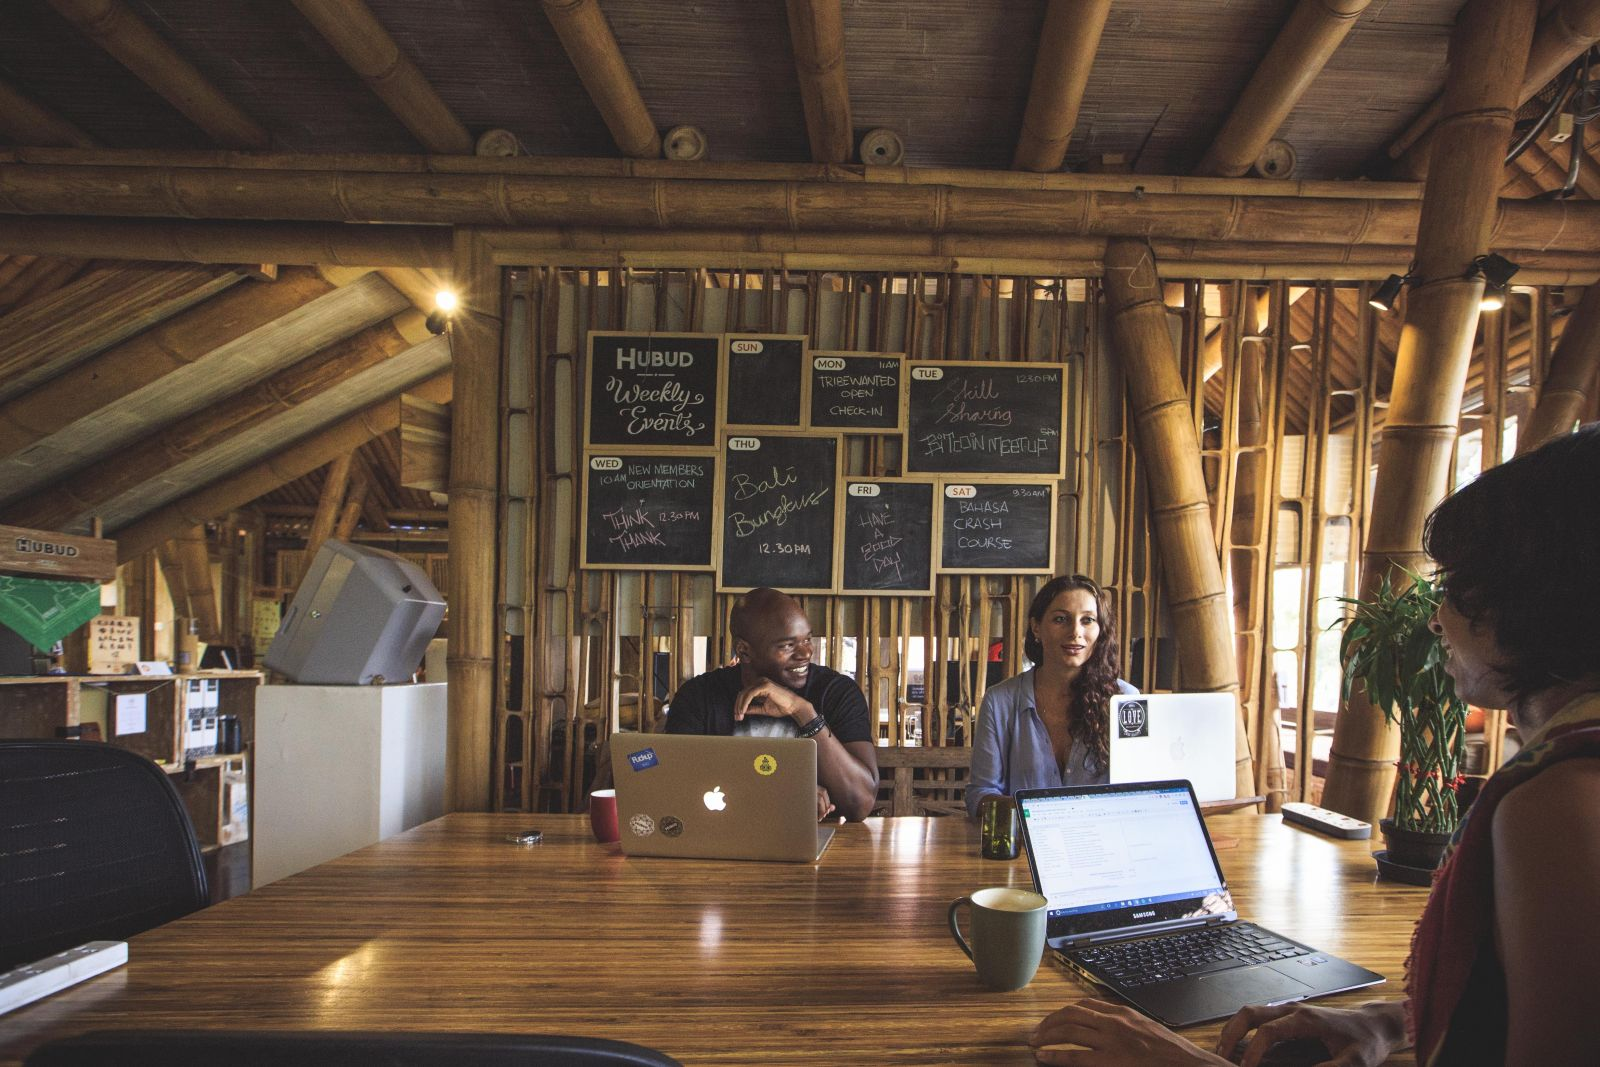 Recommended Coworking Space in Bali for More Cheerful Workday